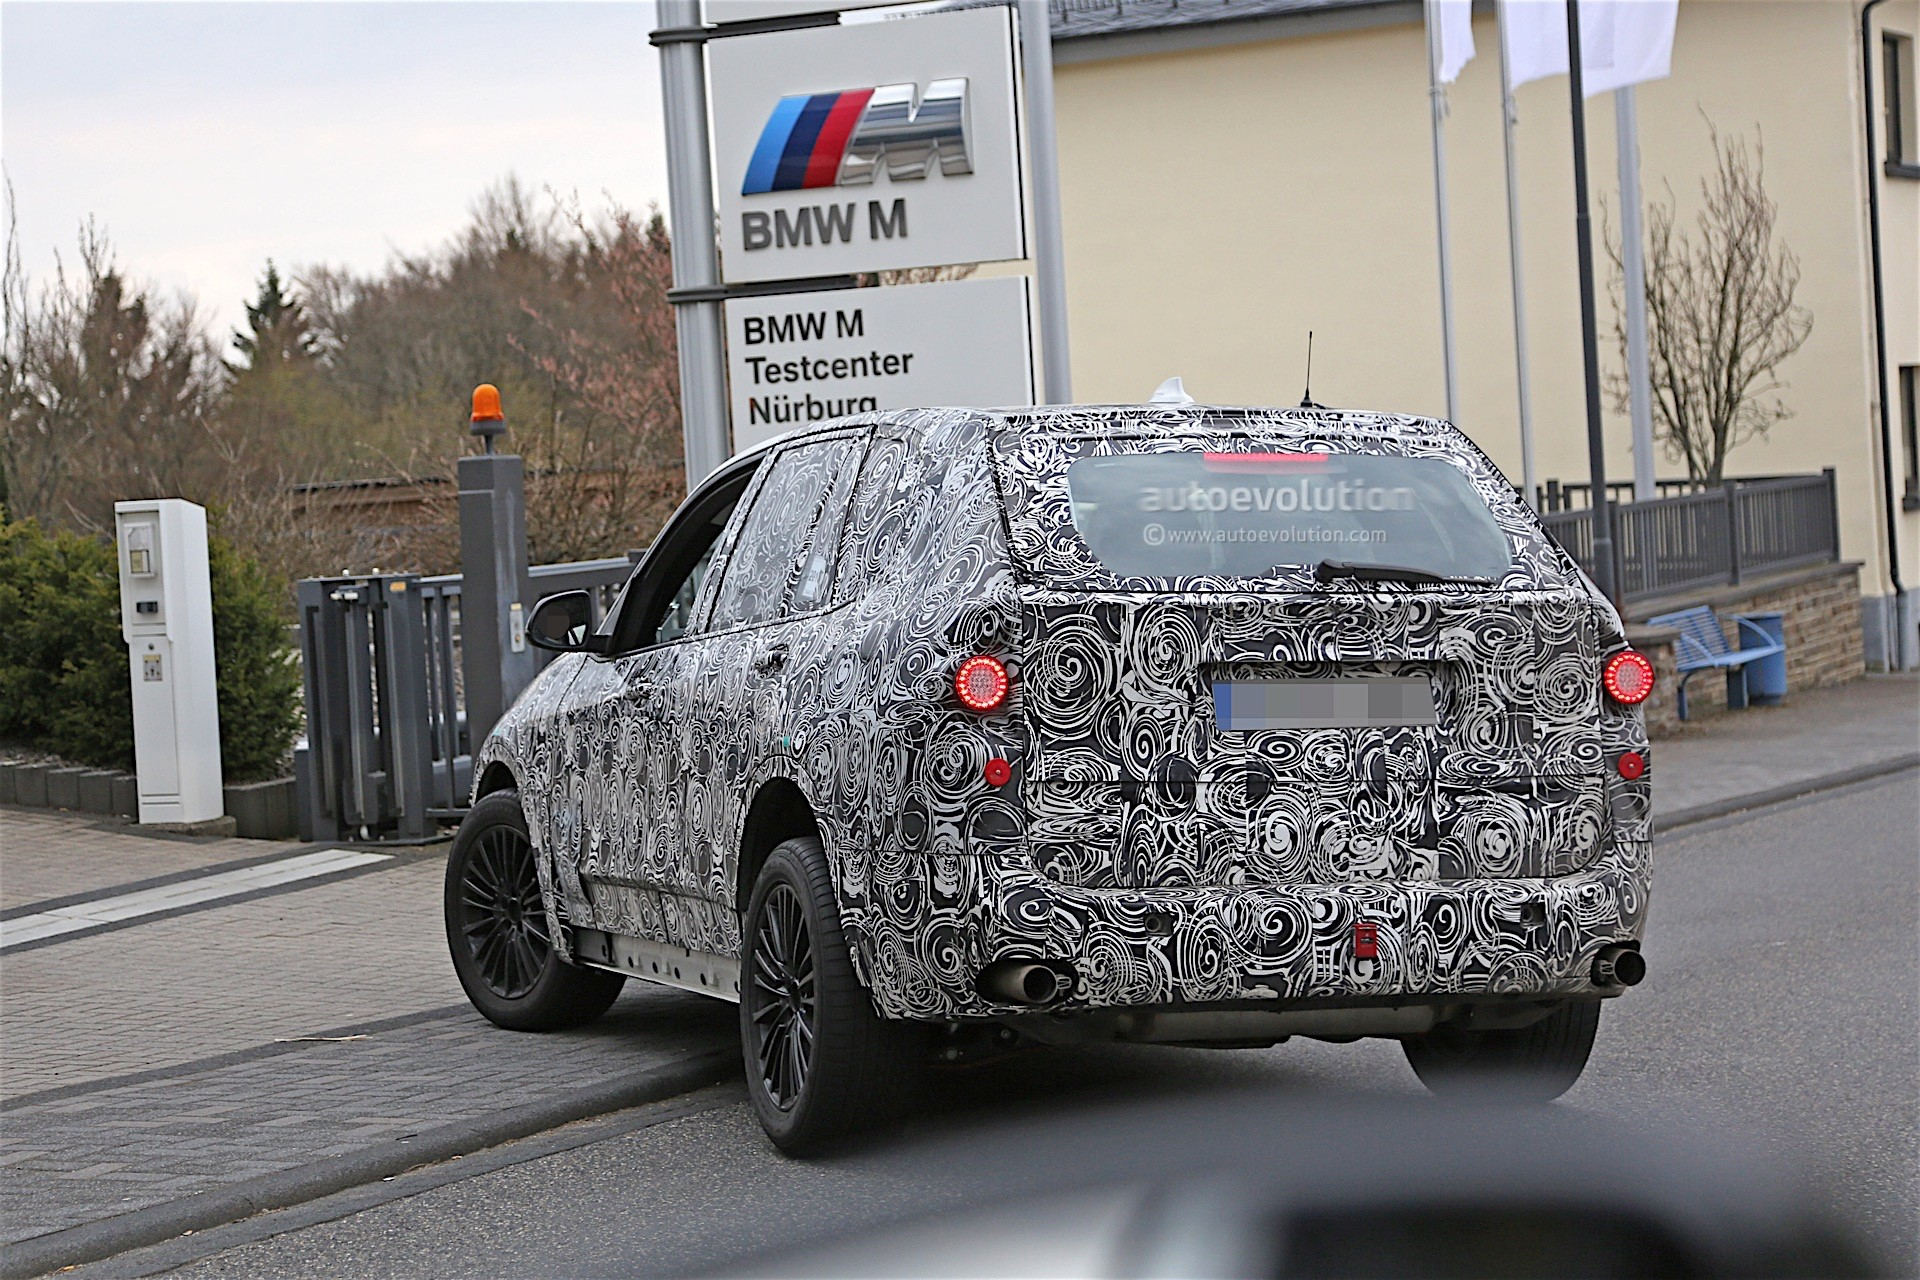 next-gen-2​019-bmw-x5​-laps-nurb​urgring-lo​oks-less-n​ose-heavy-​than-curre​nt-model_1​0